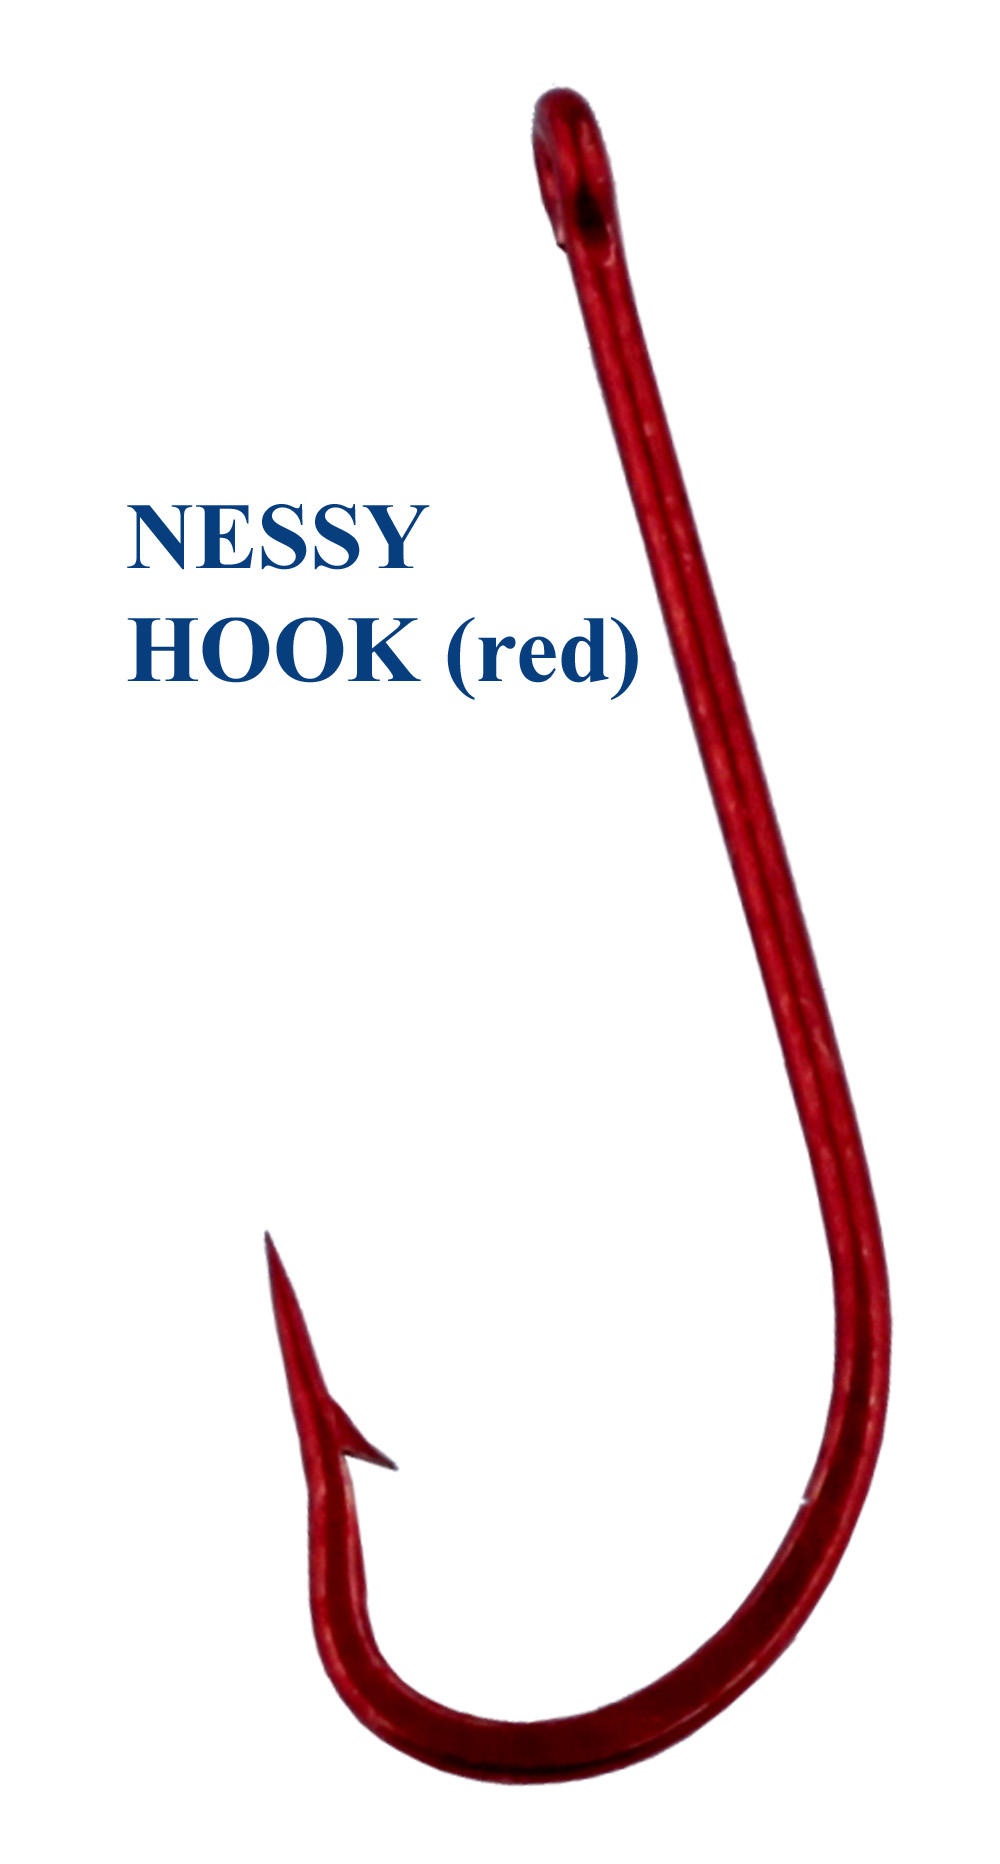 NESSY HOOK (red)